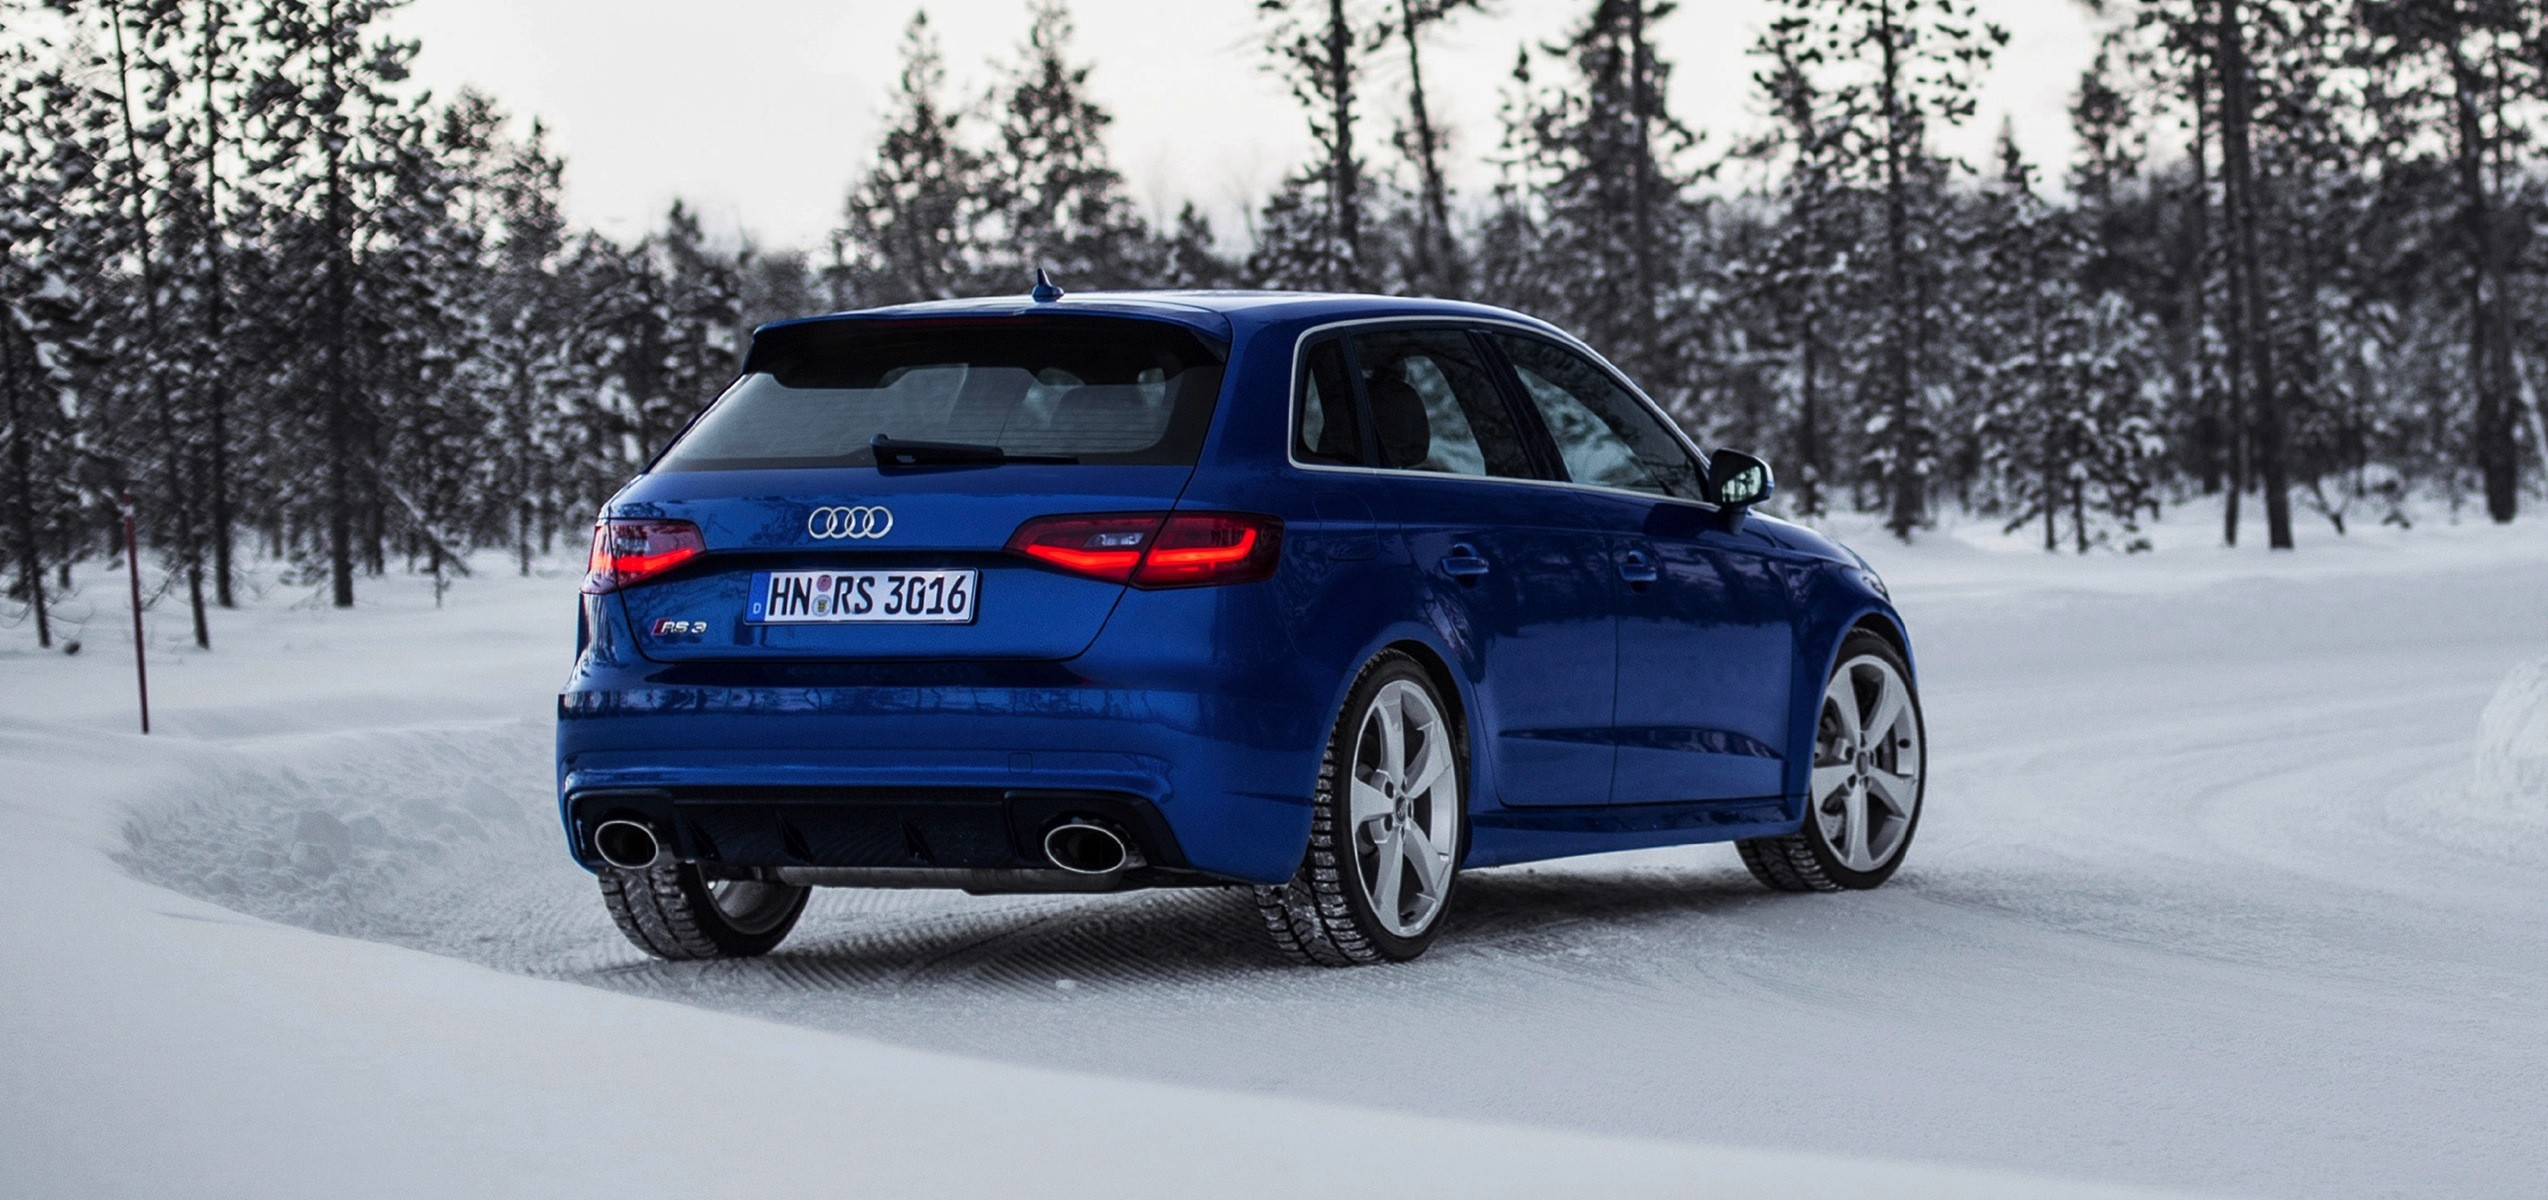 362 bhp audi rs3 sportback priced at 40 000 in britain autoevolution. Black Bedroom Furniture Sets. Home Design Ideas